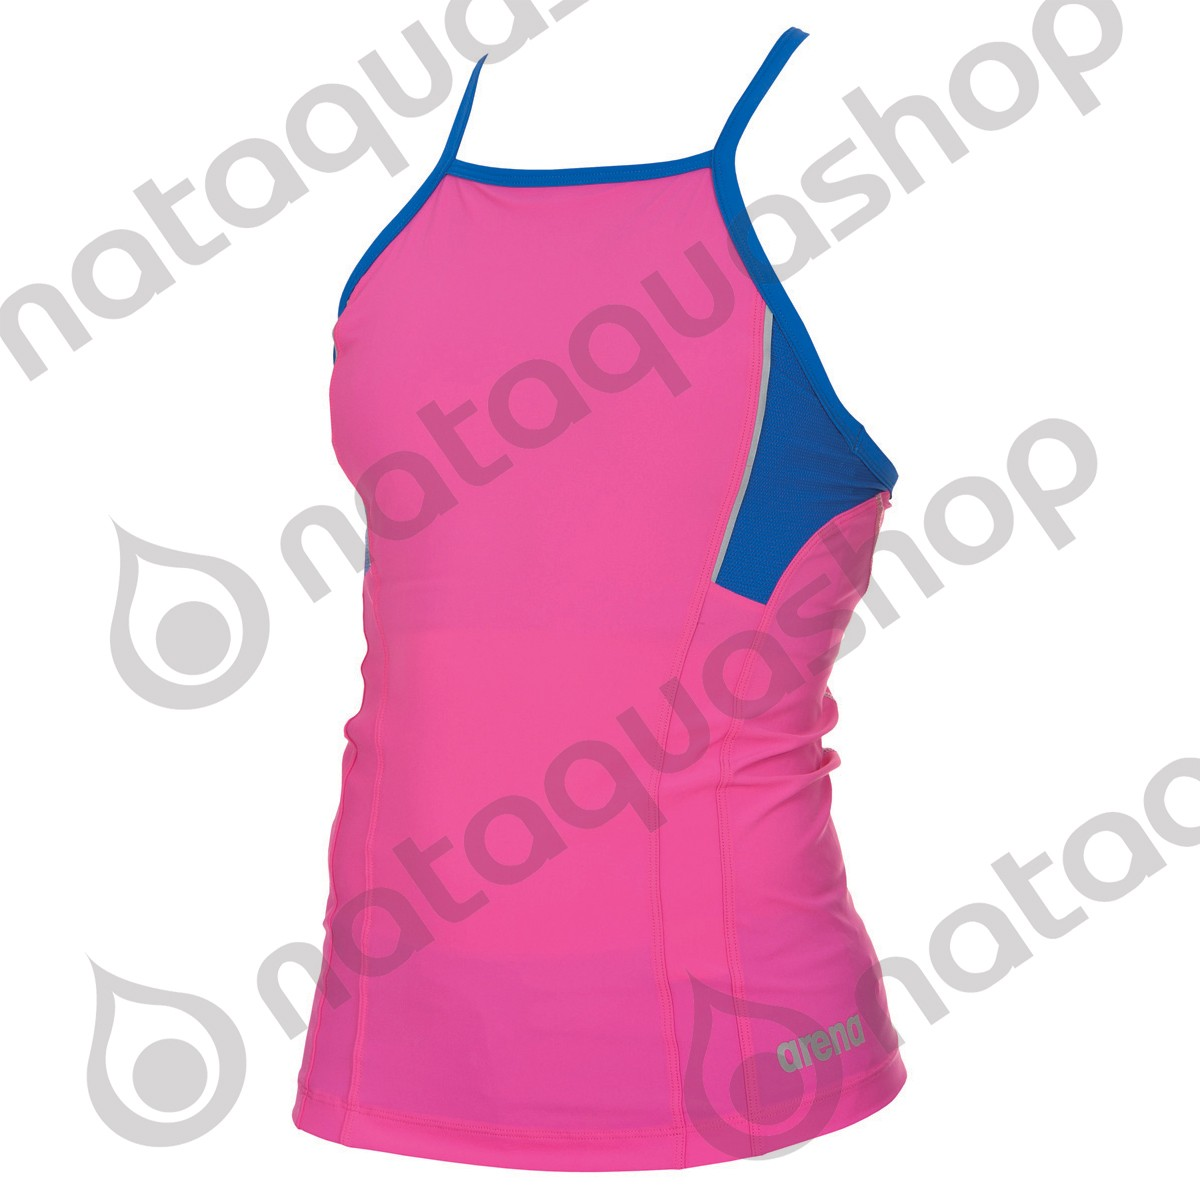 W PERFORMANCE REVO TANK TOP Color